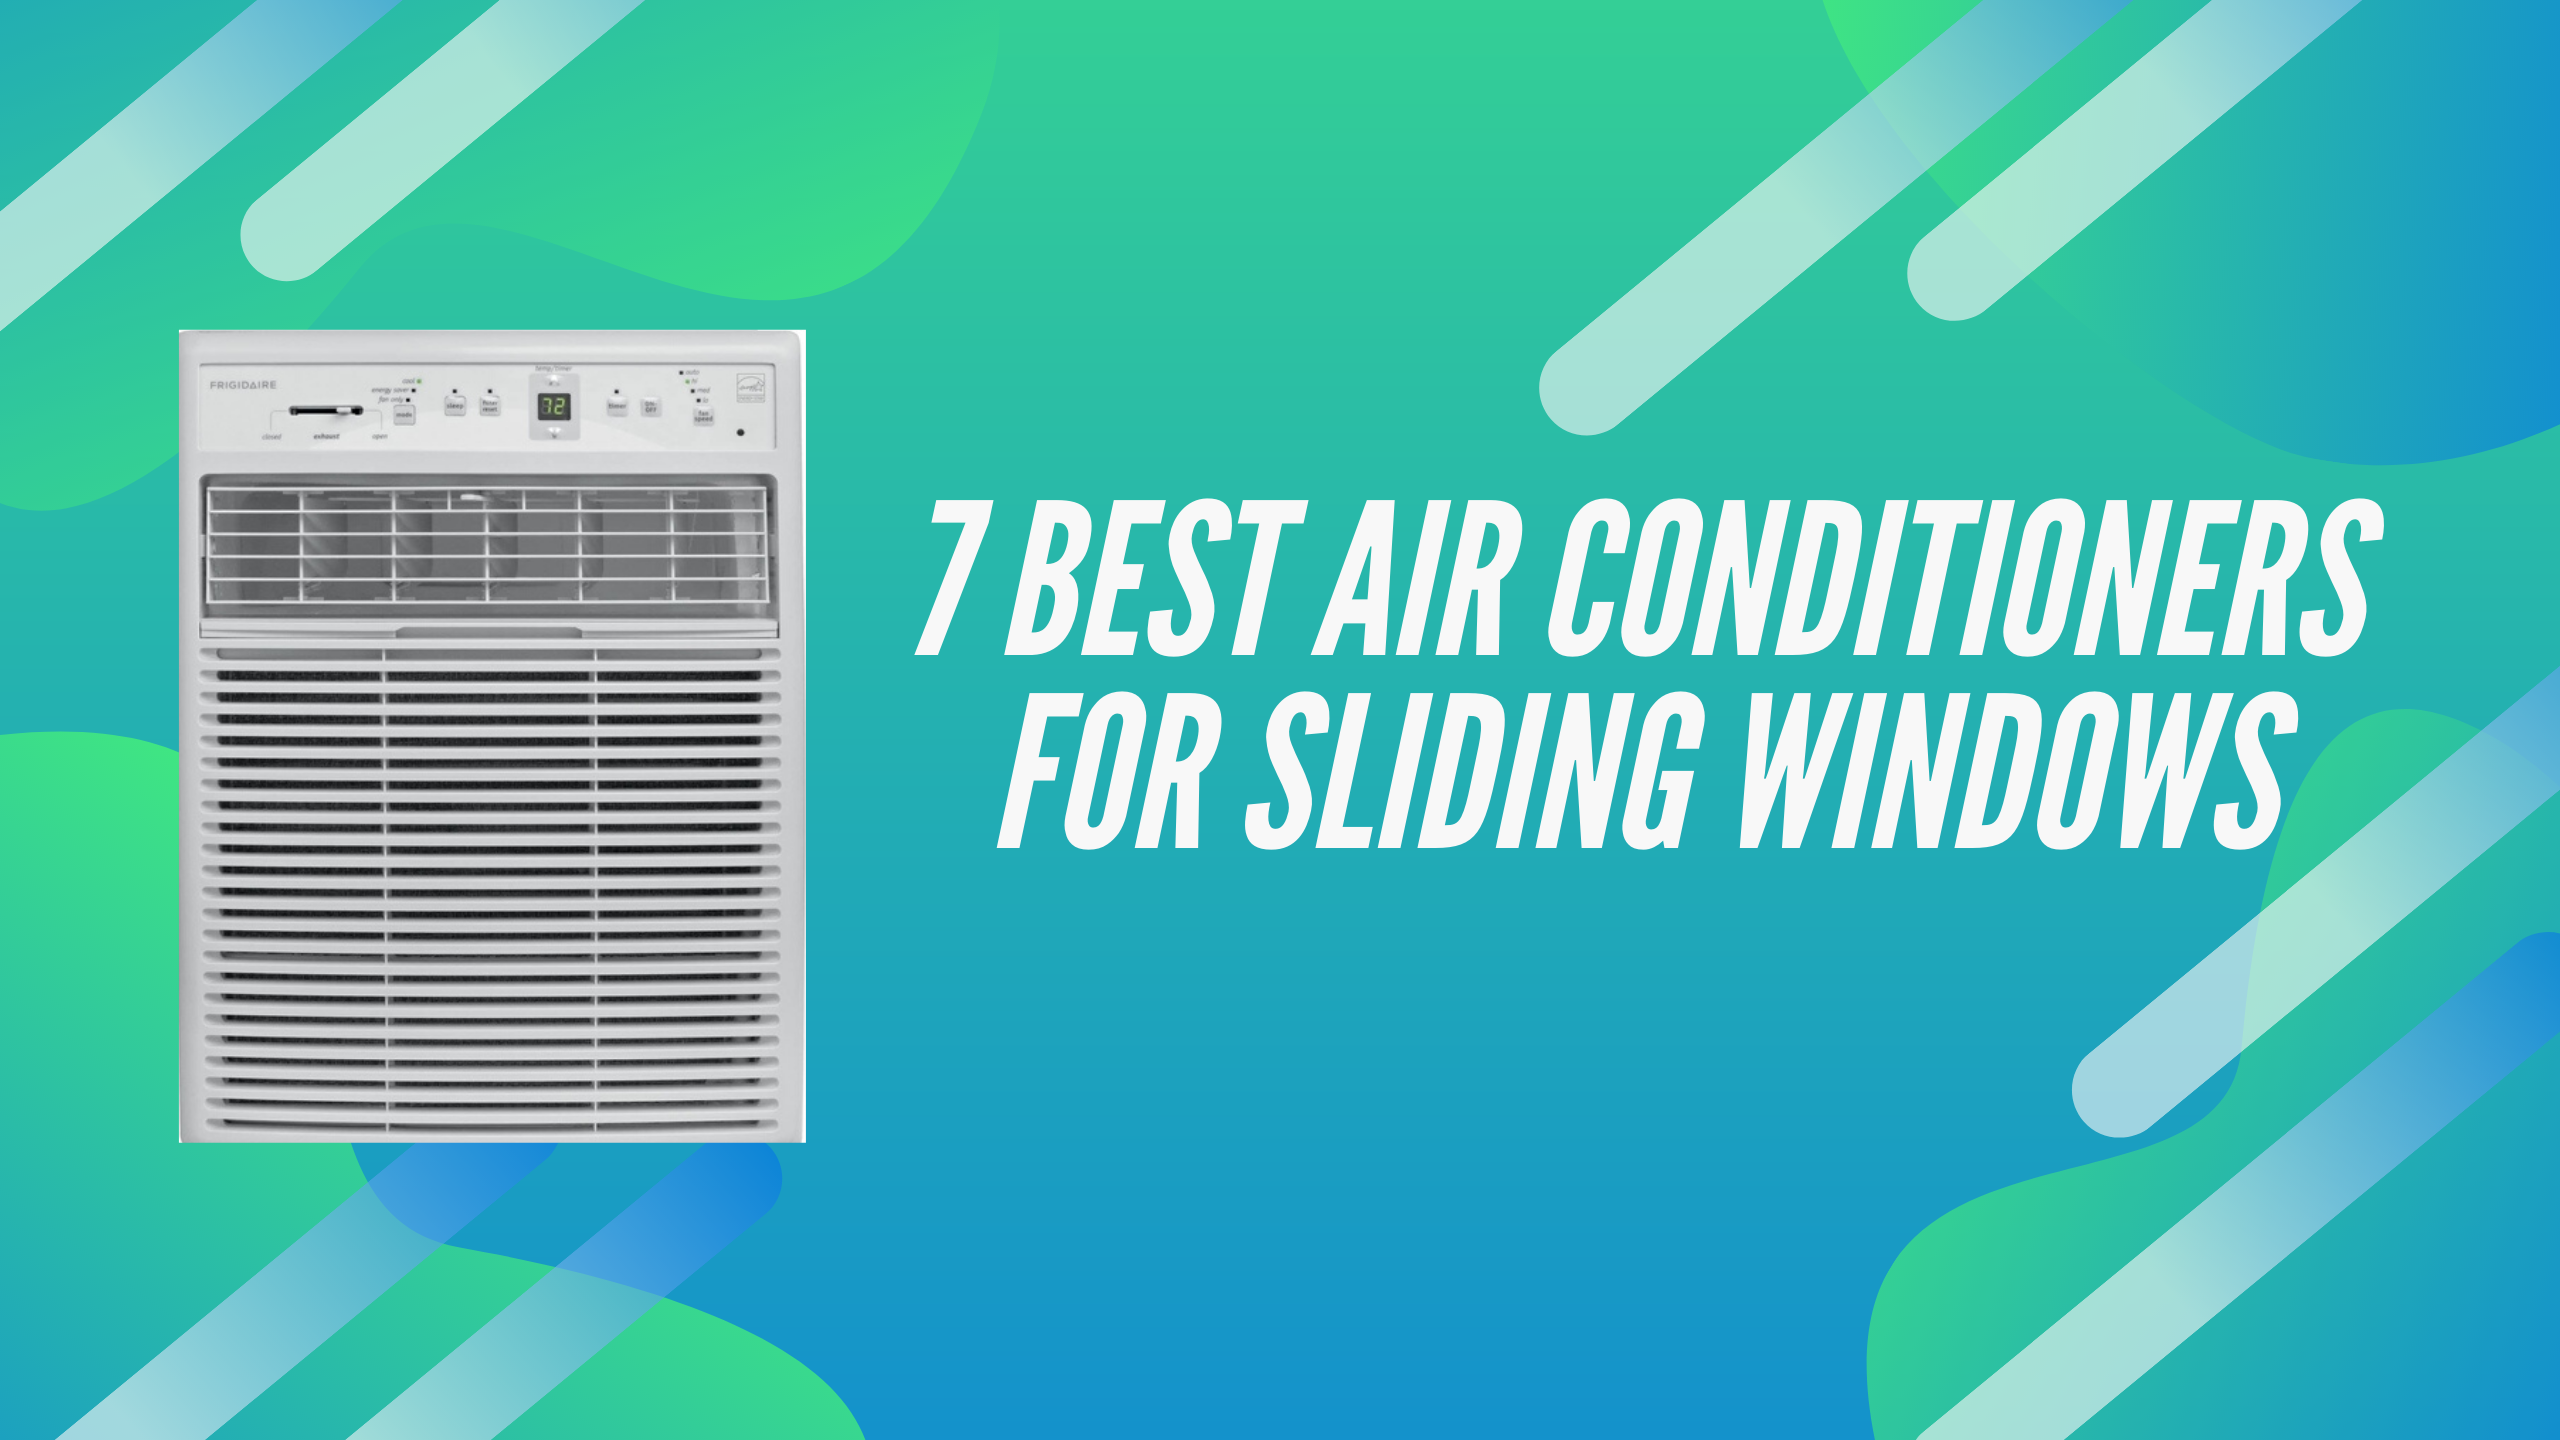 7 Best Air Conditioners for Sliding Windows in 2020